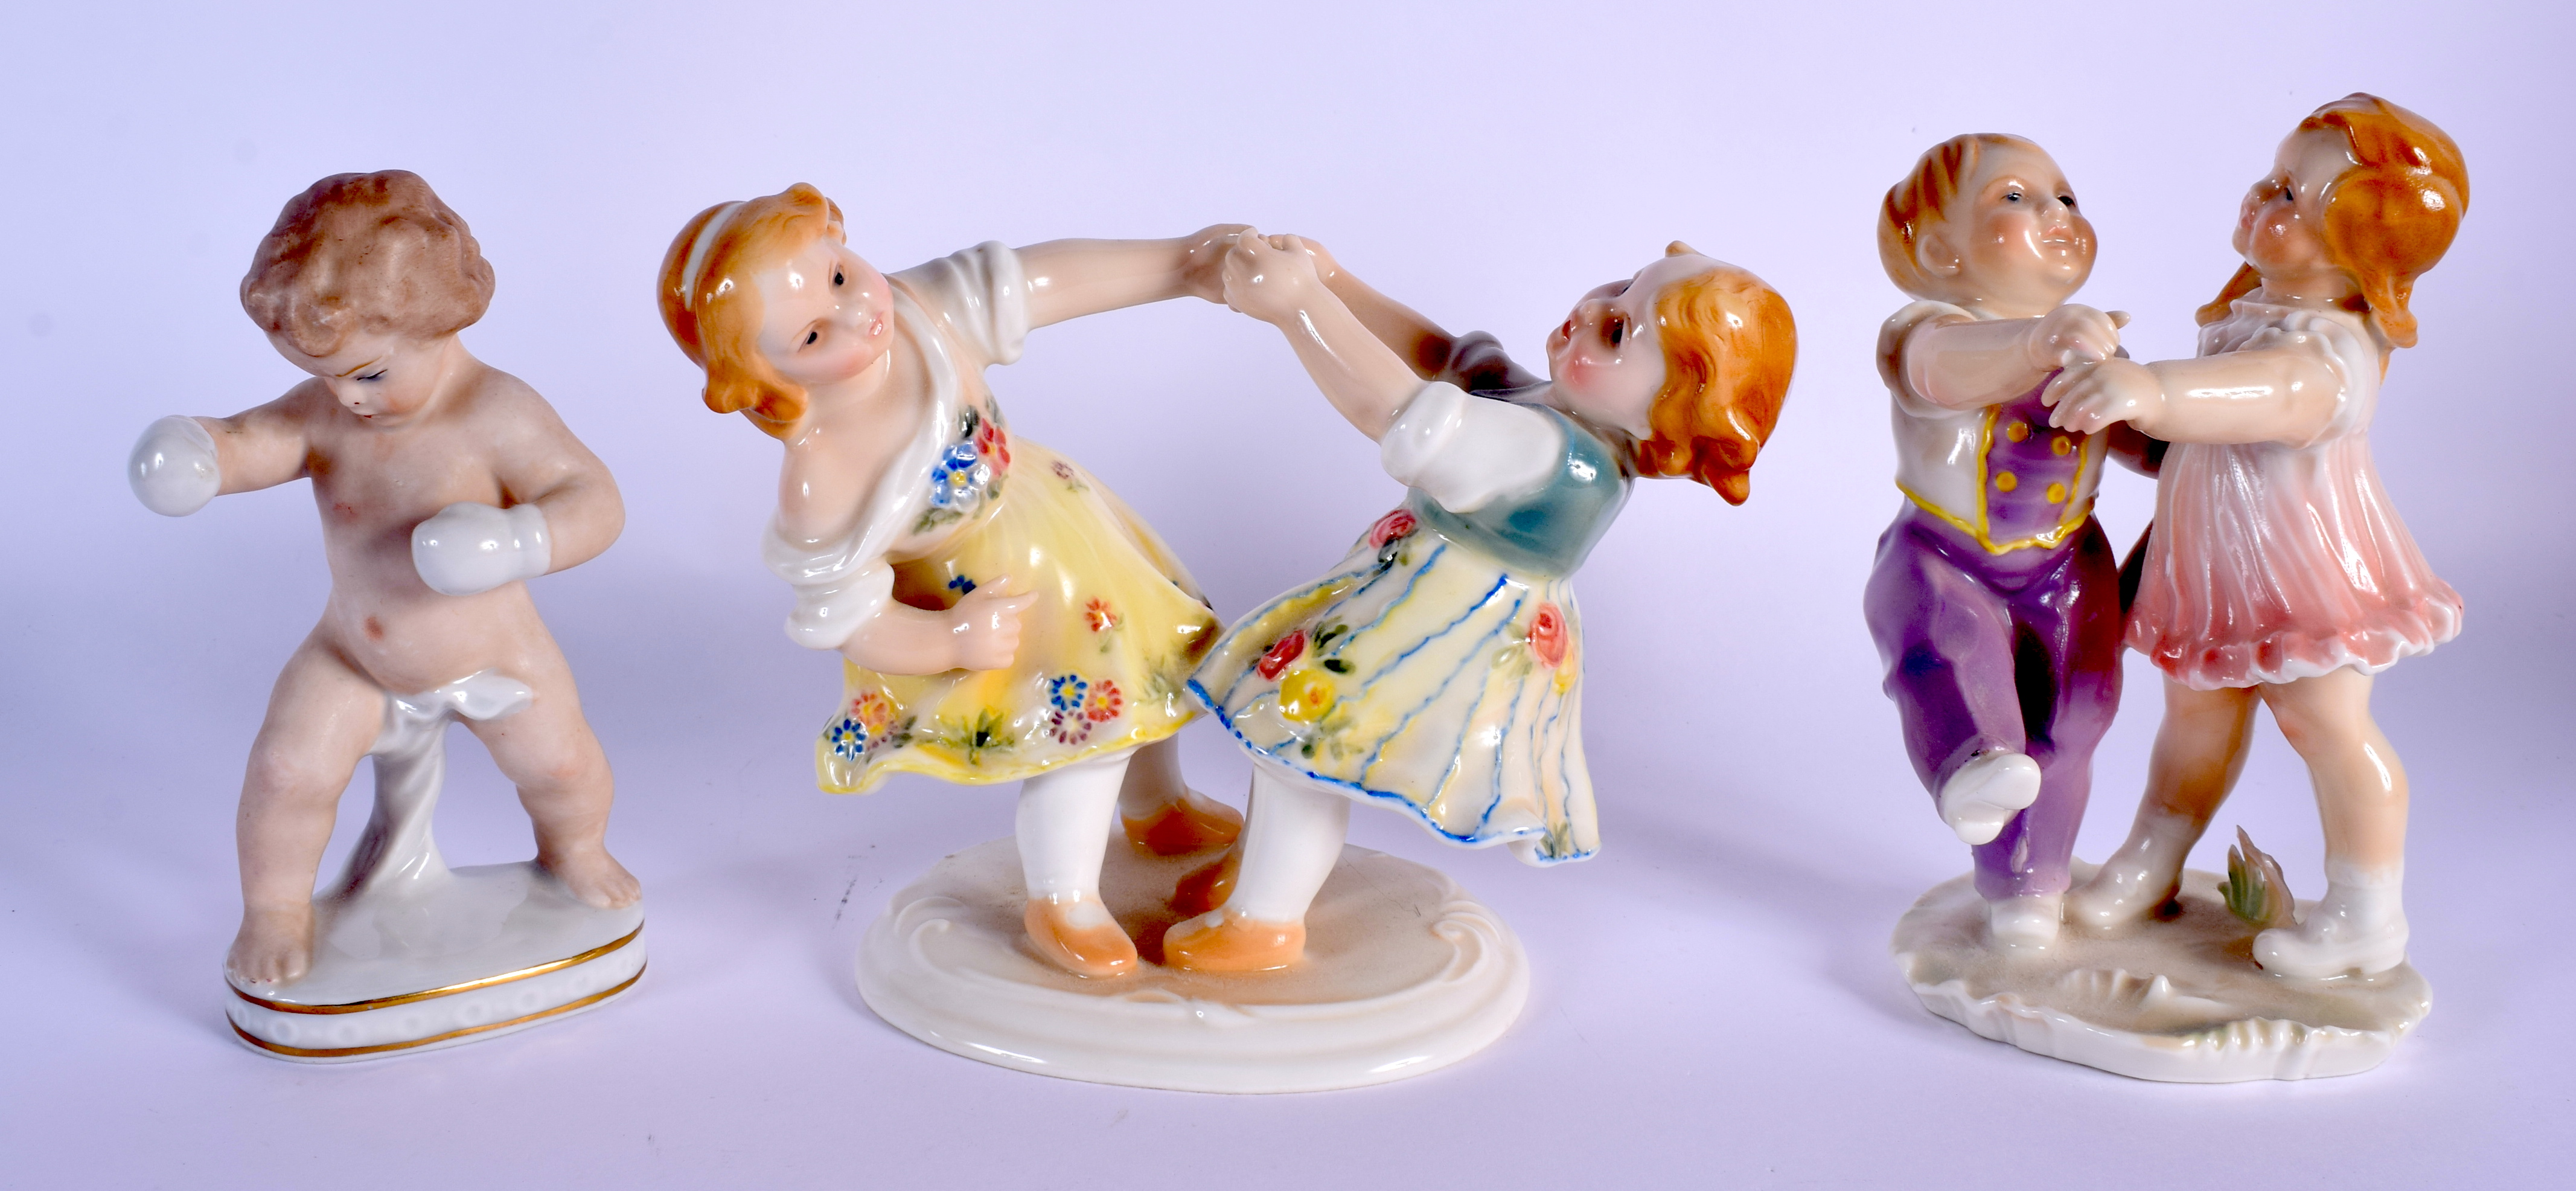 TWO KARL ENZ VOLKSTEDT PORCELAIN FIGURAL GROUPS together with another similar. Largest 14 cm x 14 cm